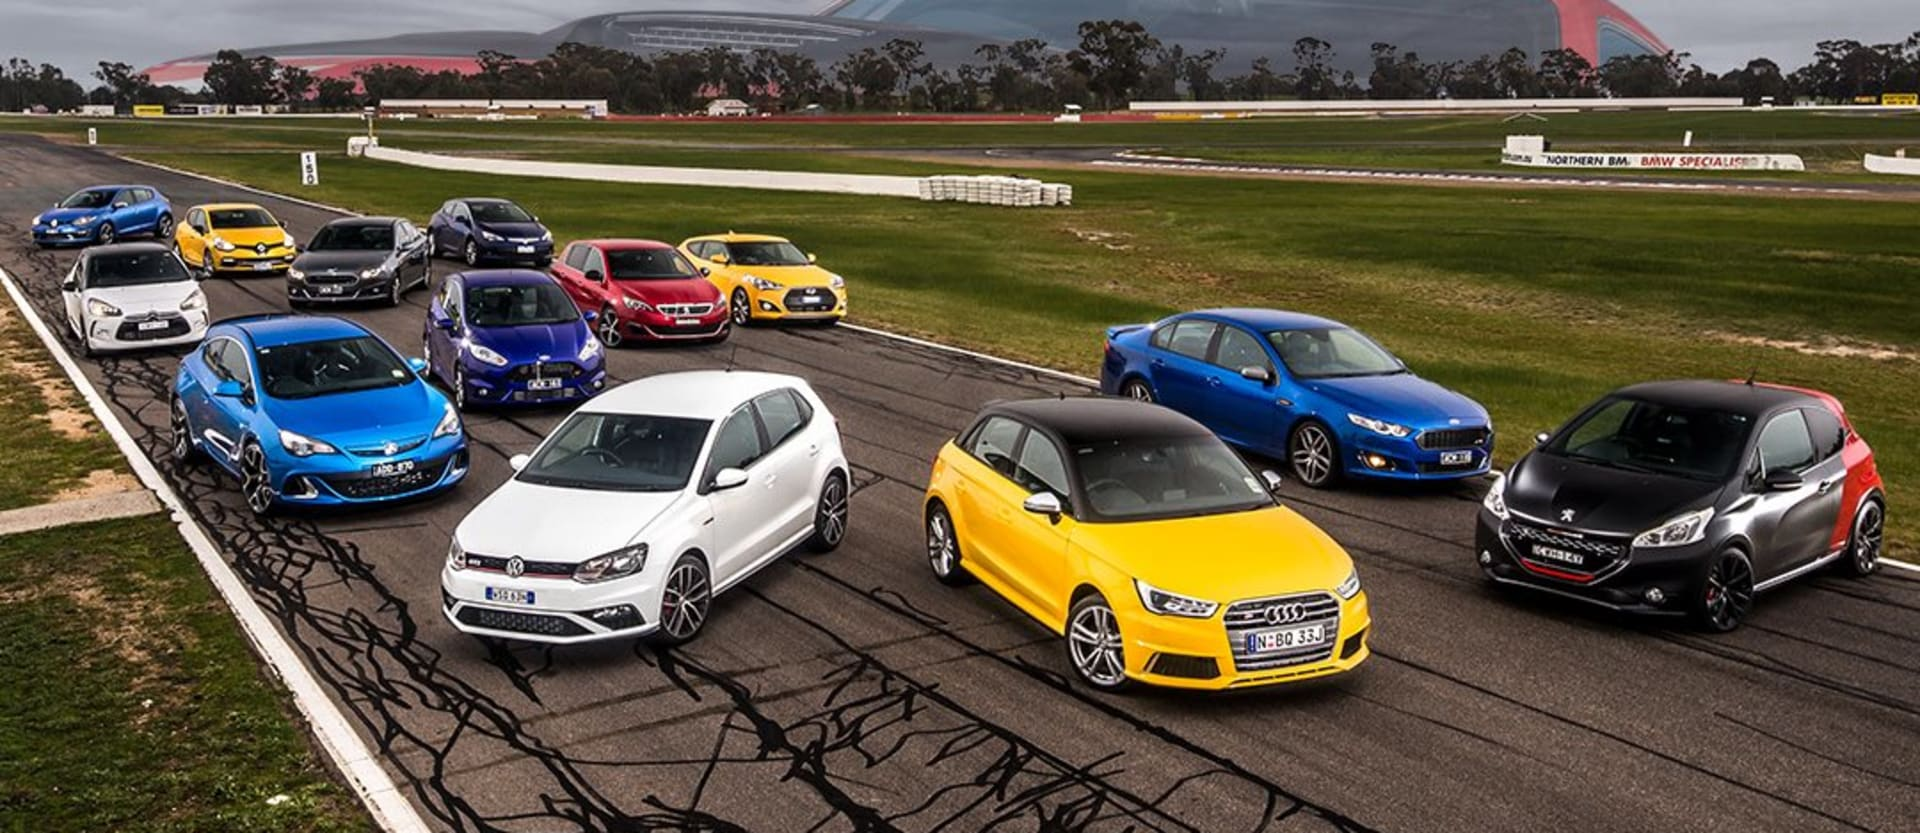 Top Performance Cars For Your Money Jpg